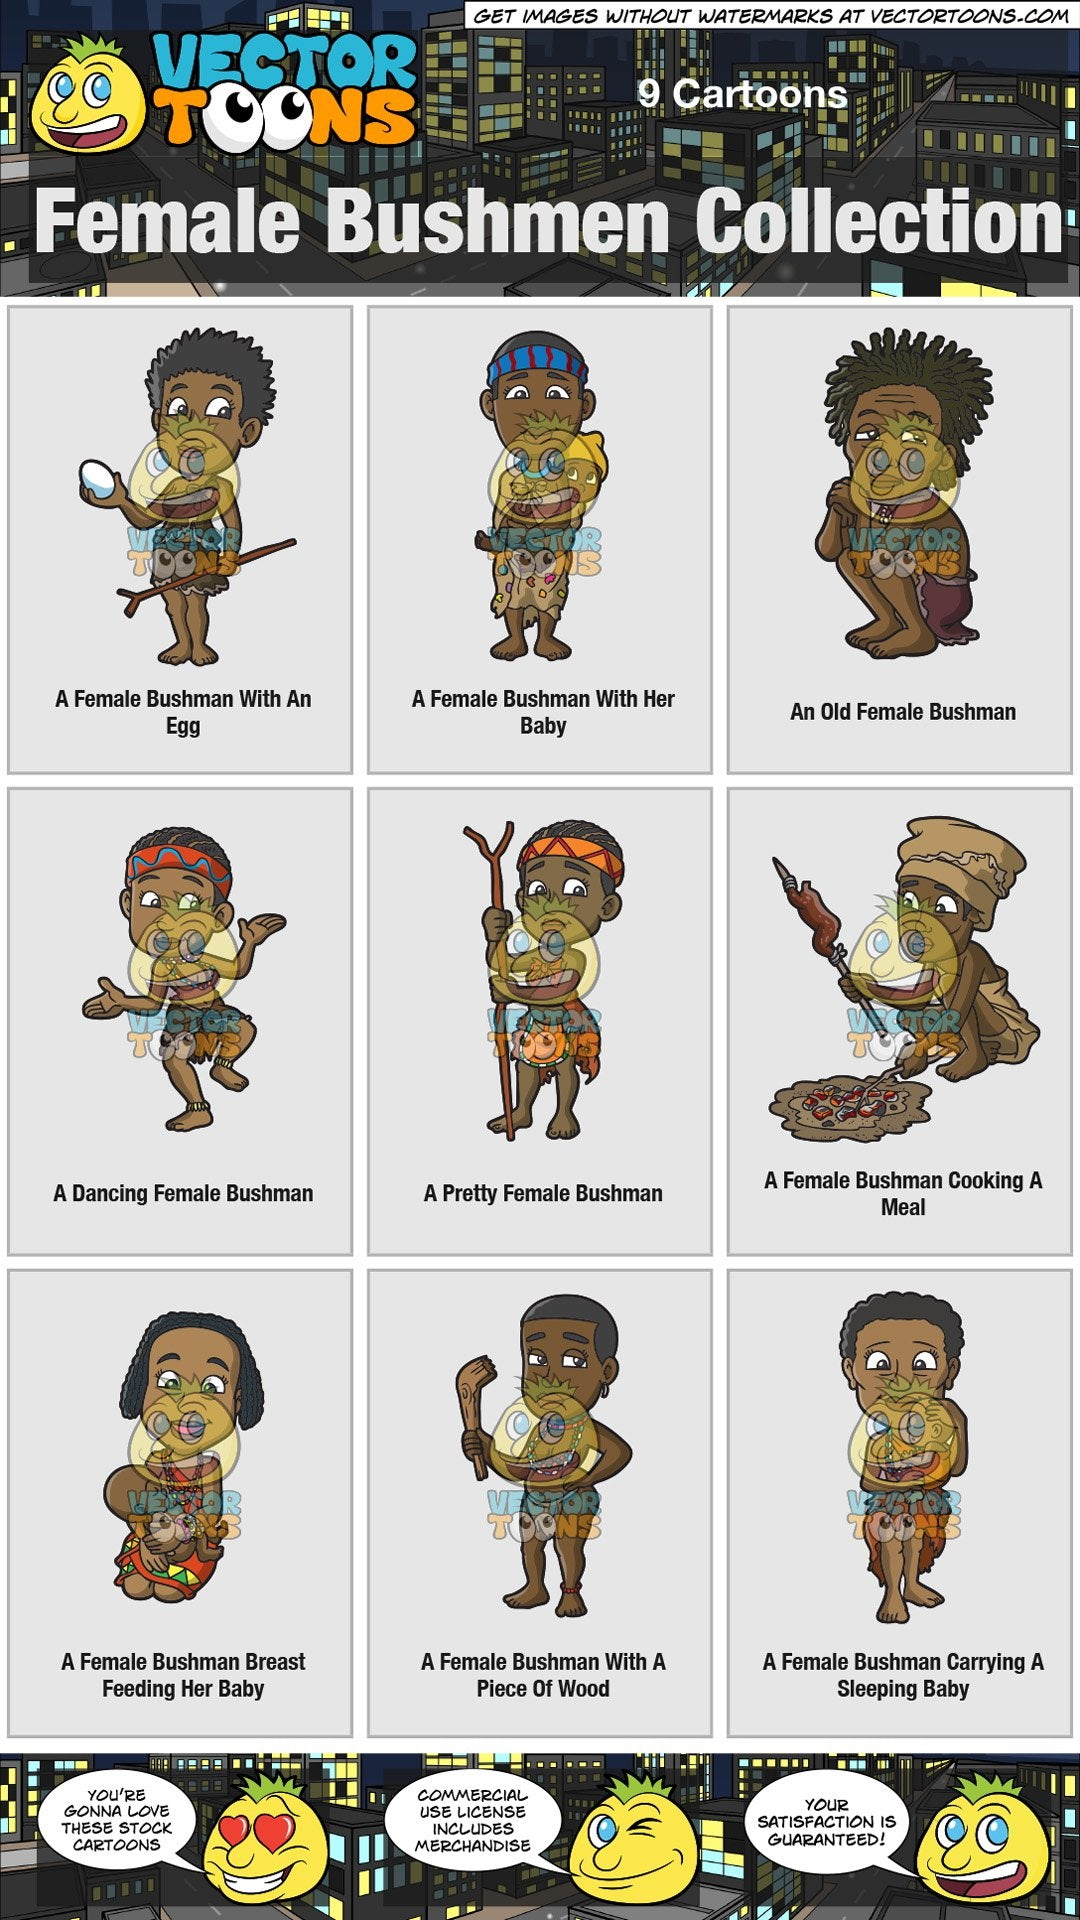 Female Bushmen Collection